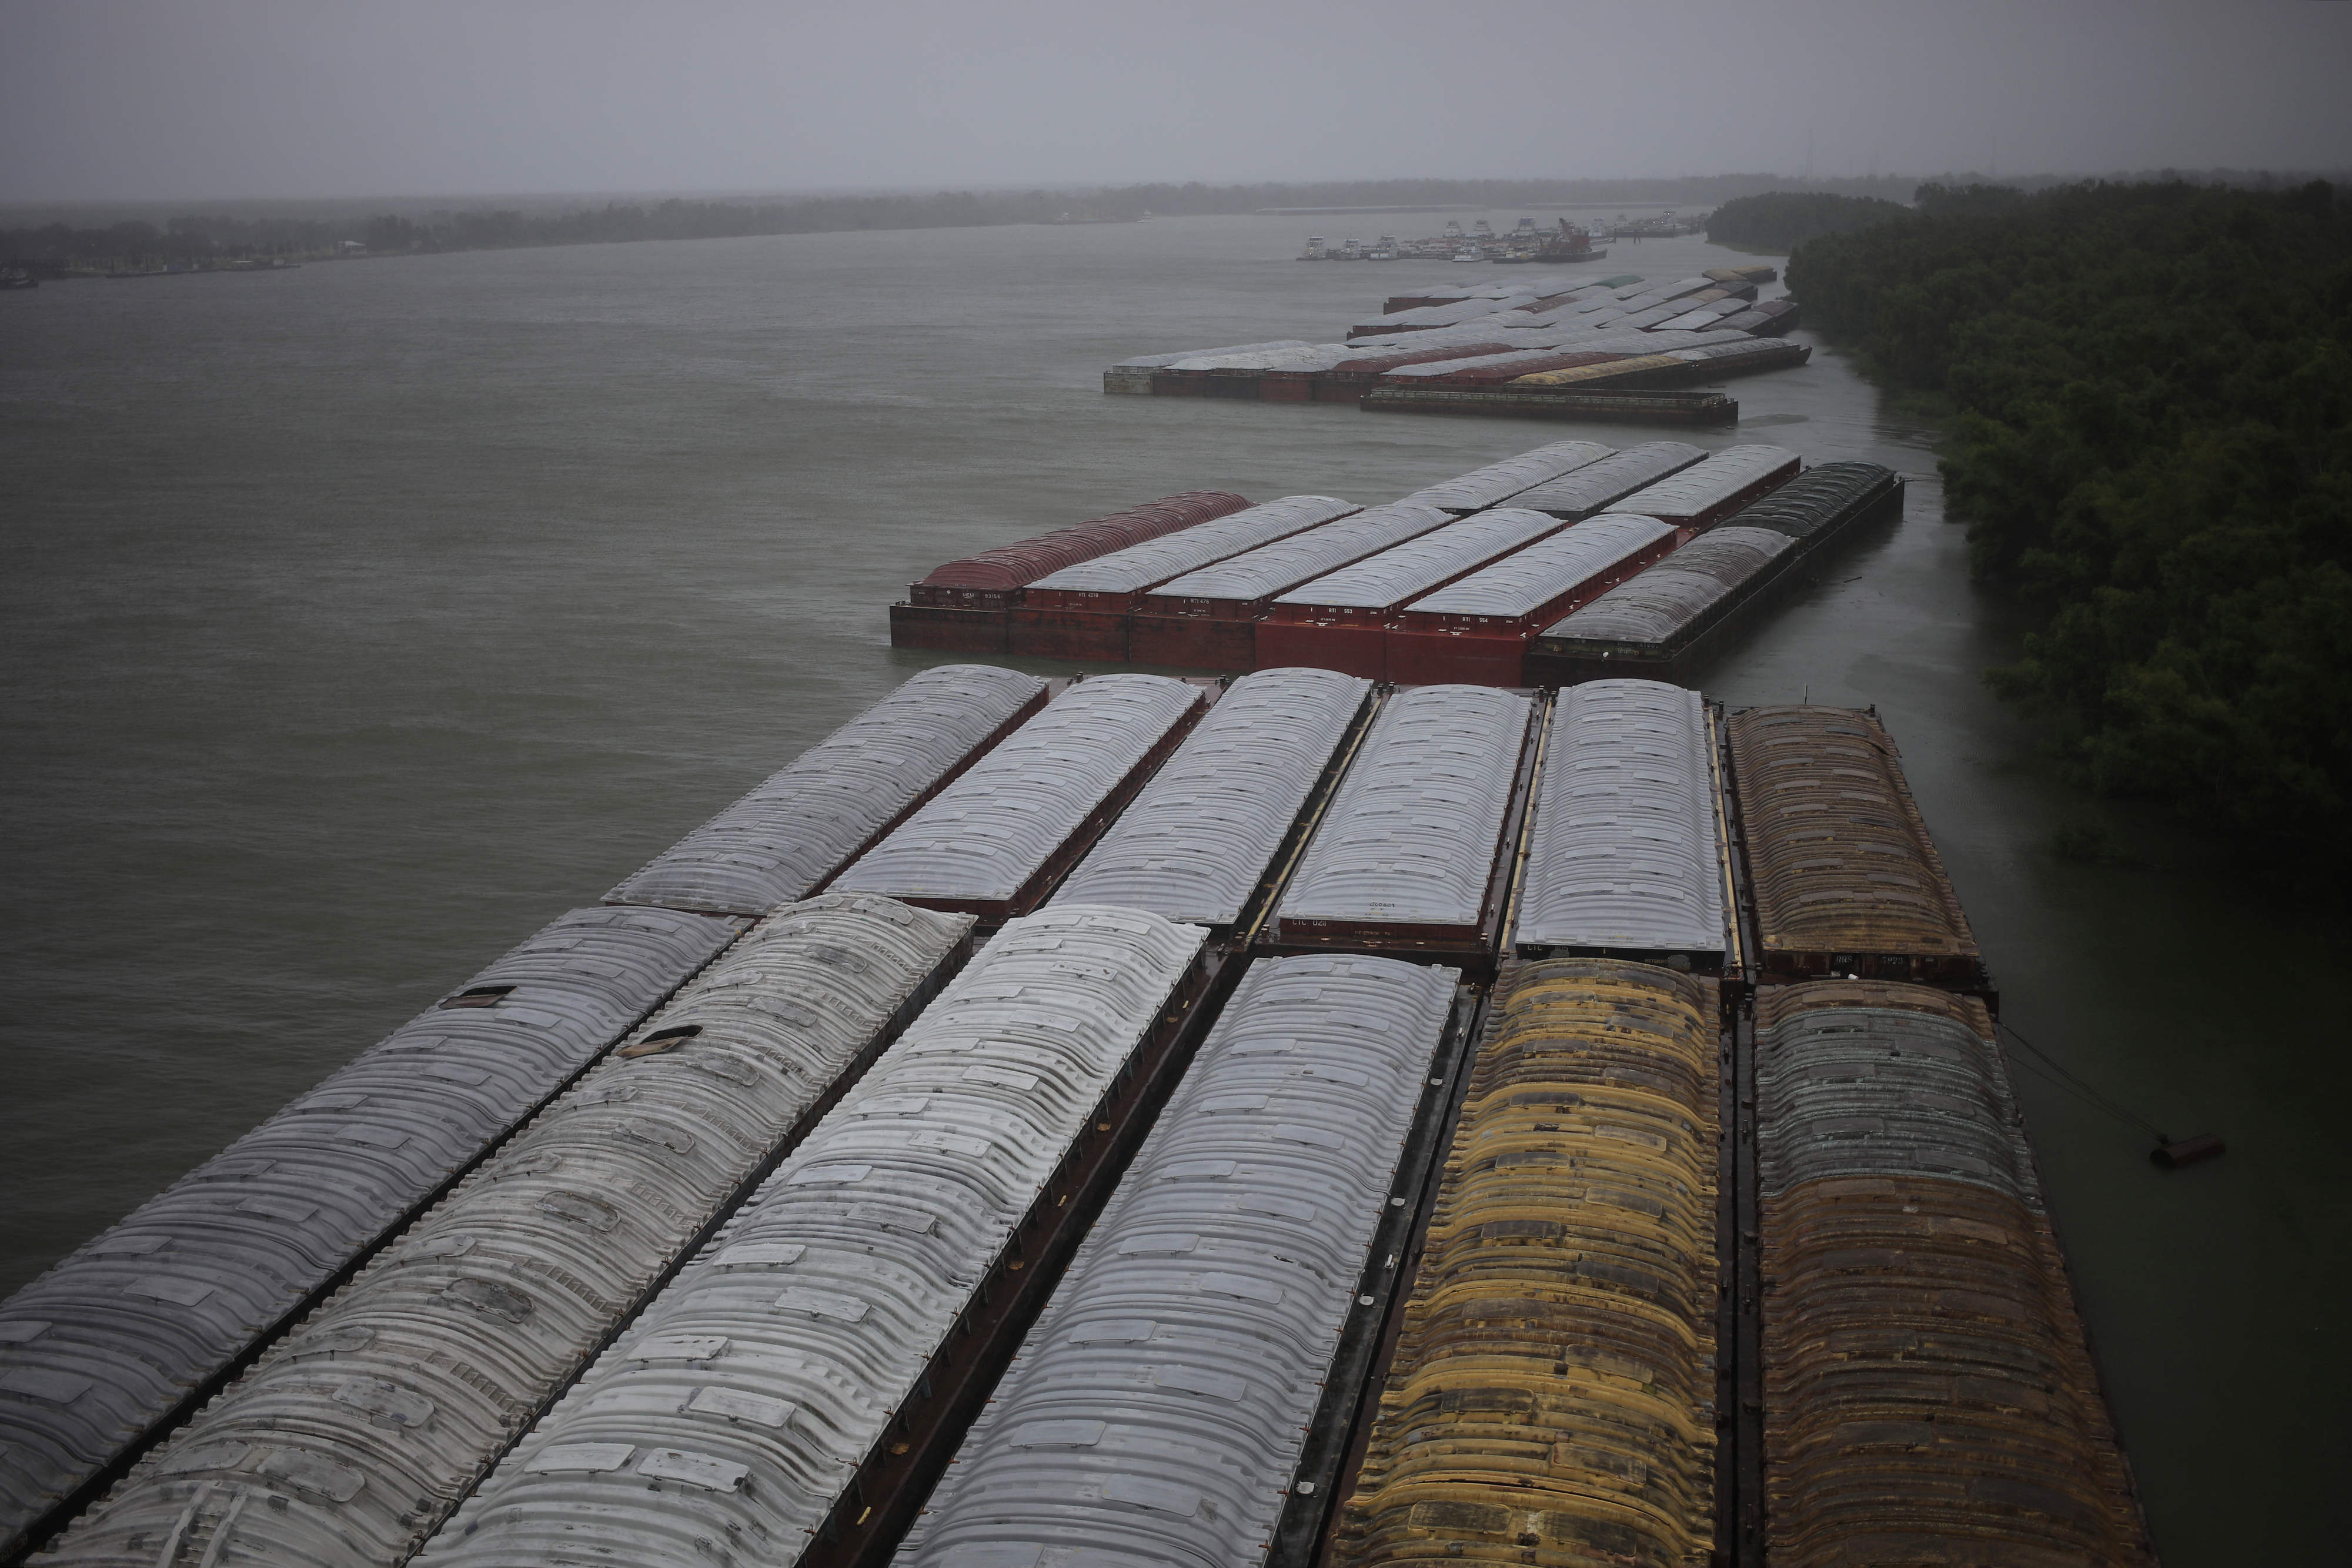 Barges are docked on the Mississippi River in Destrehan, Louisiana, on Sunday, August 29.